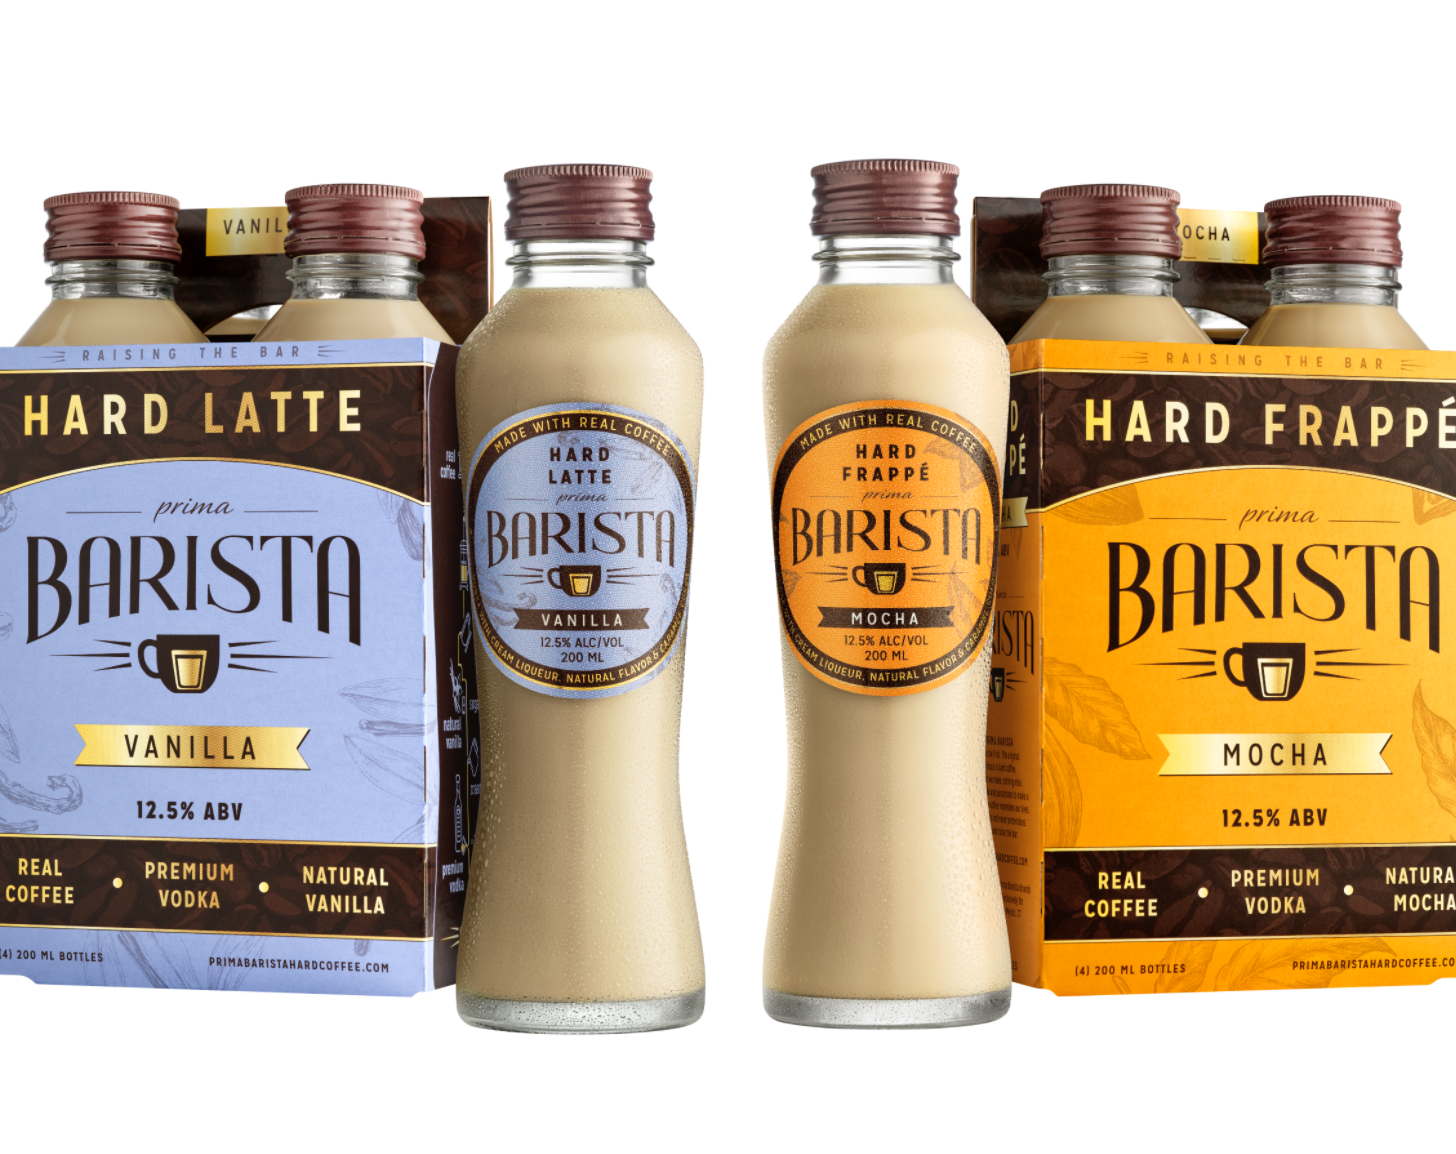 Mystic-Based Prima Barista Offers New Hard Iced Coffee